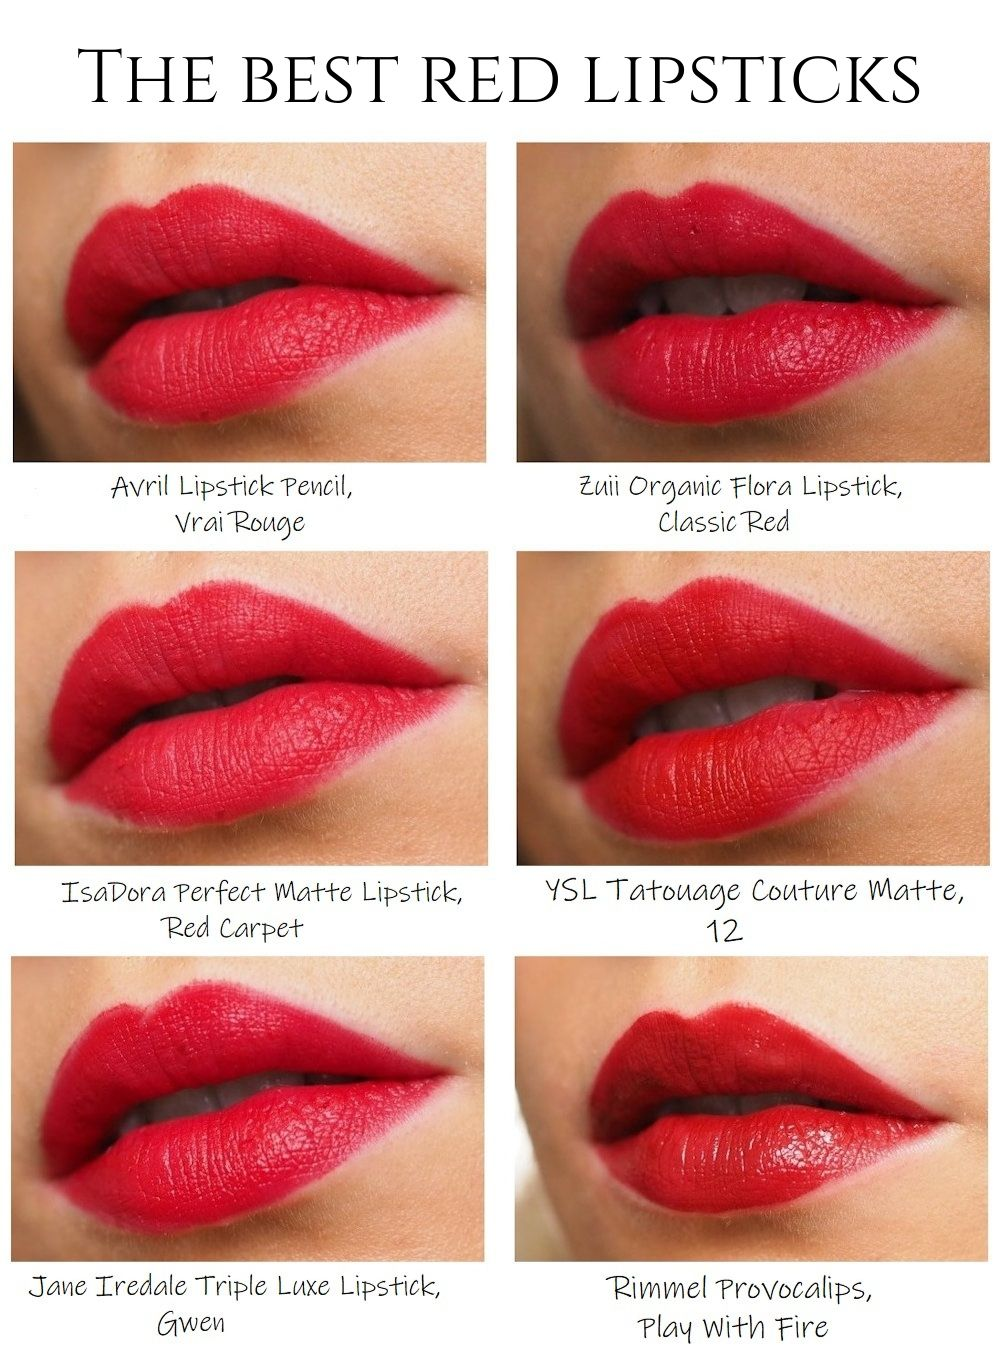 the best red lipsticks